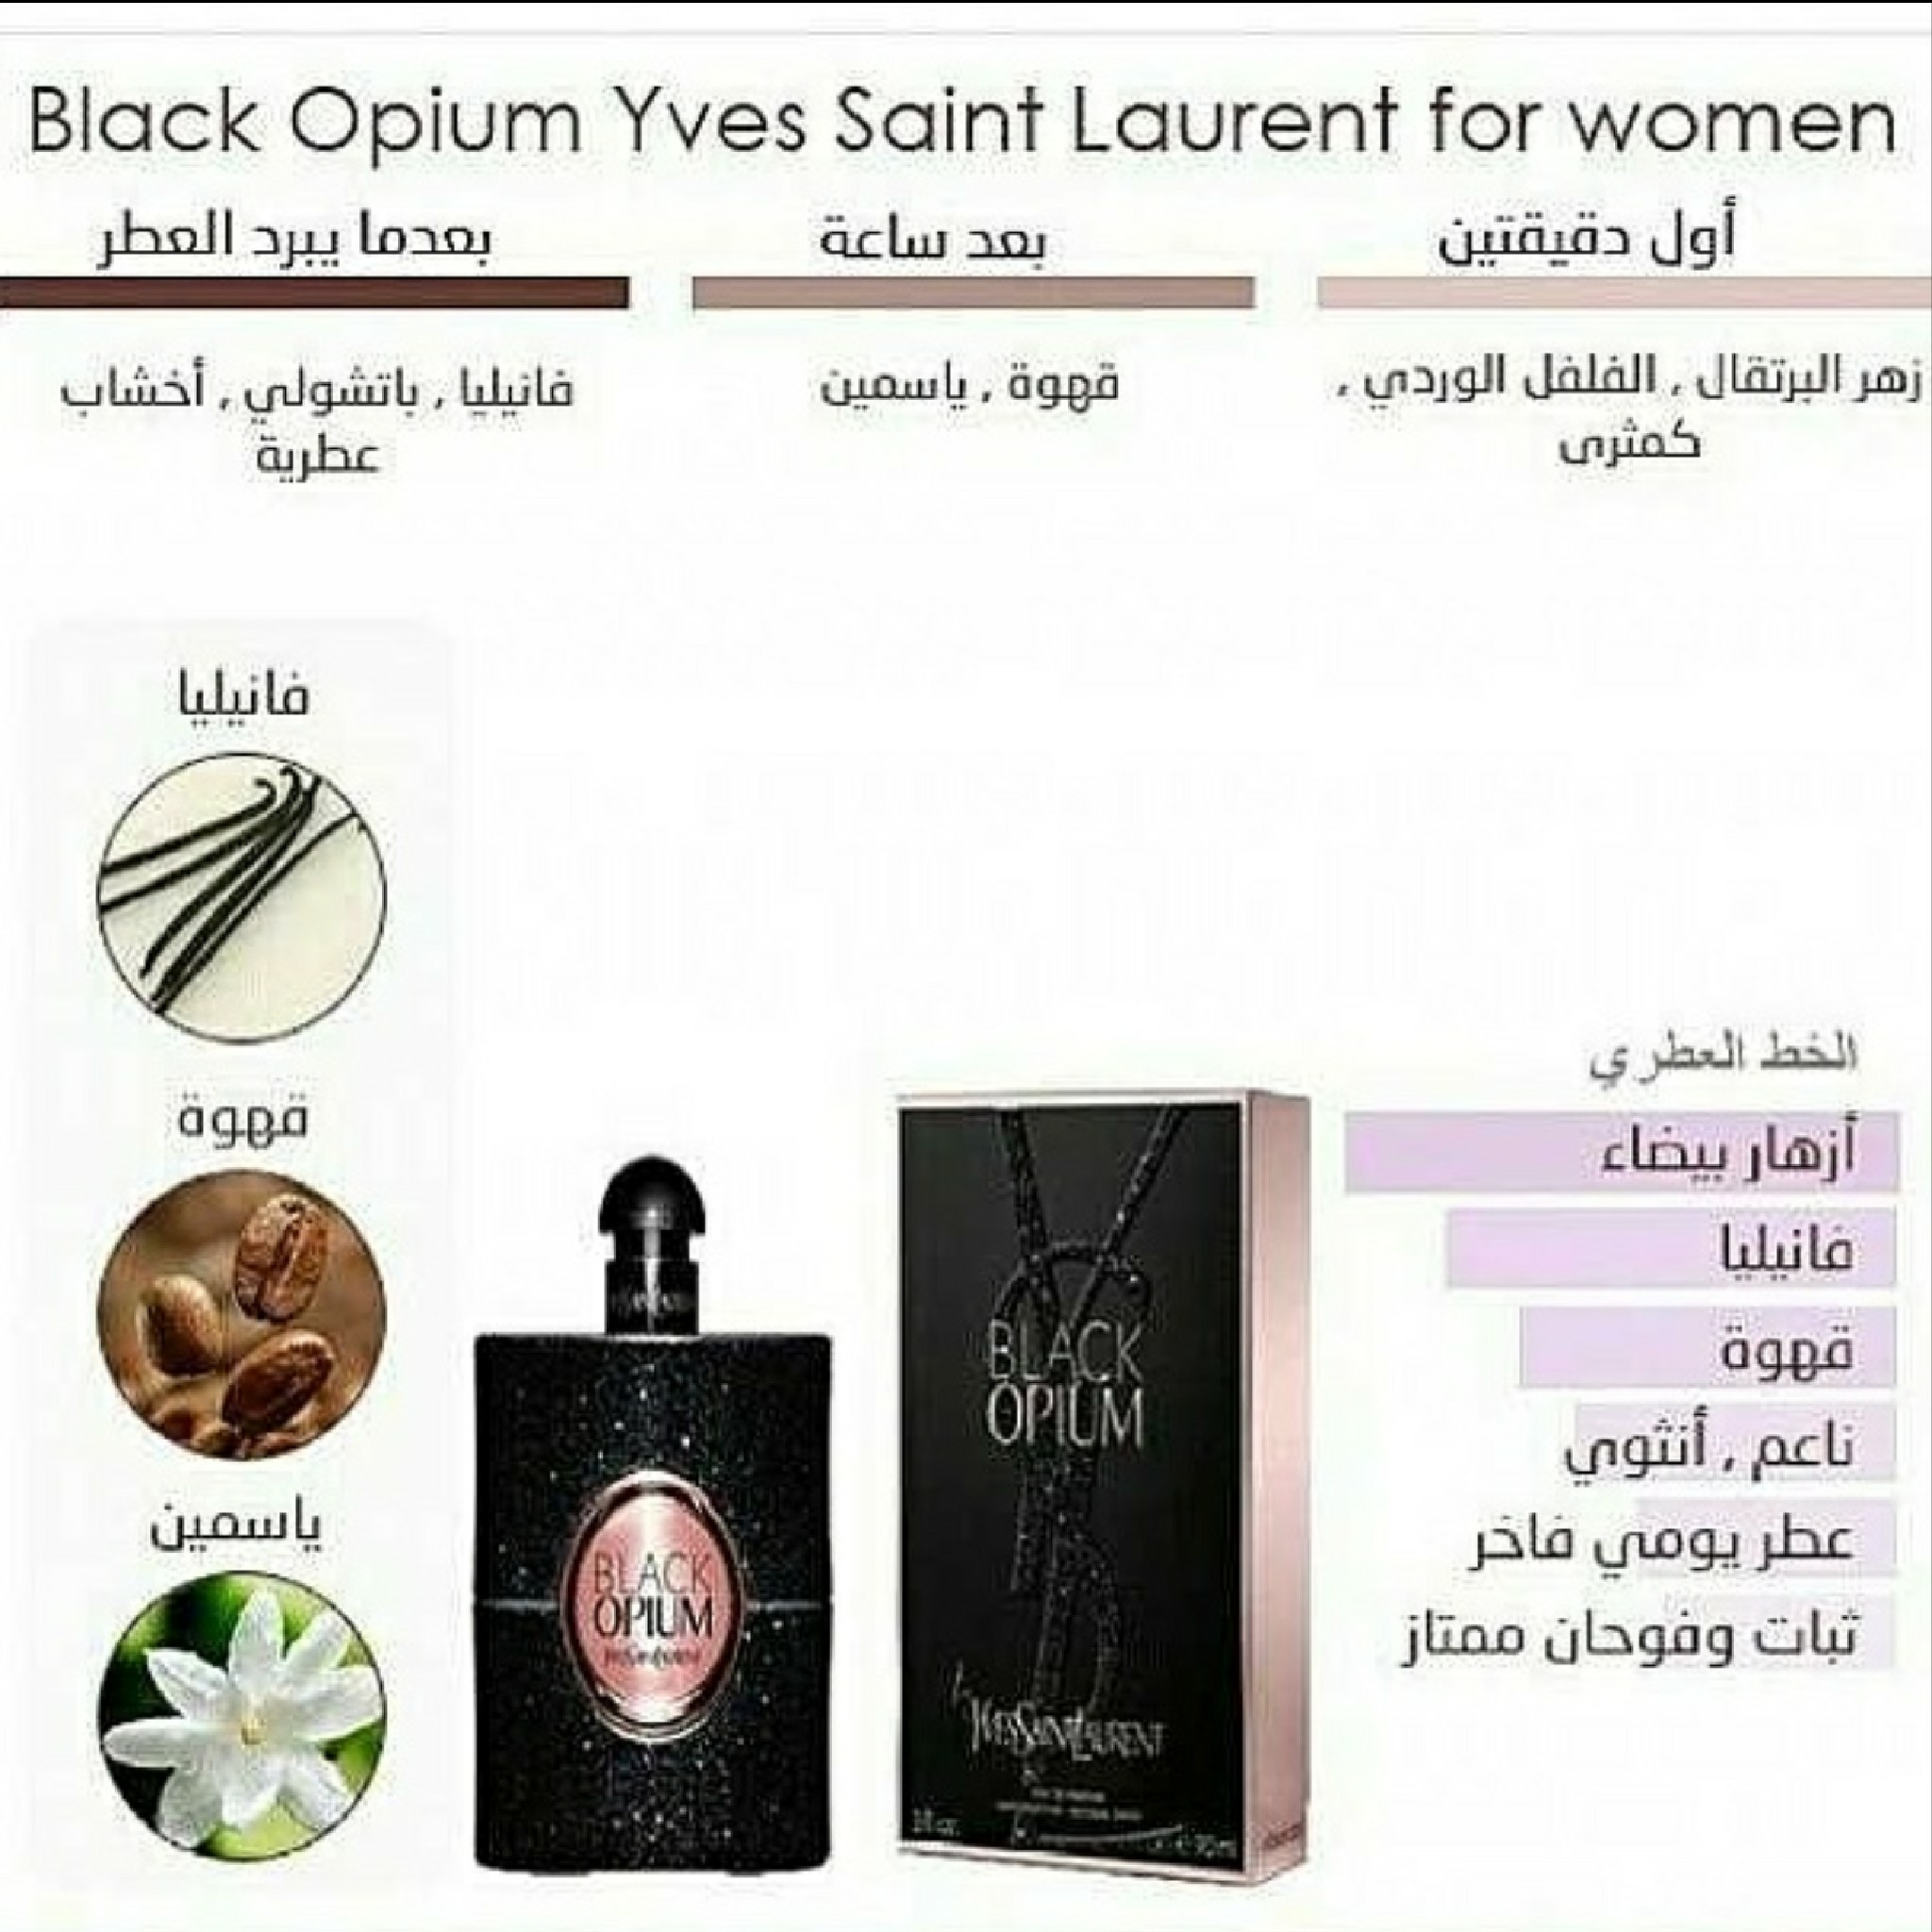 202f782be عطر بلاك اوبيوم من ايف سان لوران ١٠٠ مل   lavond